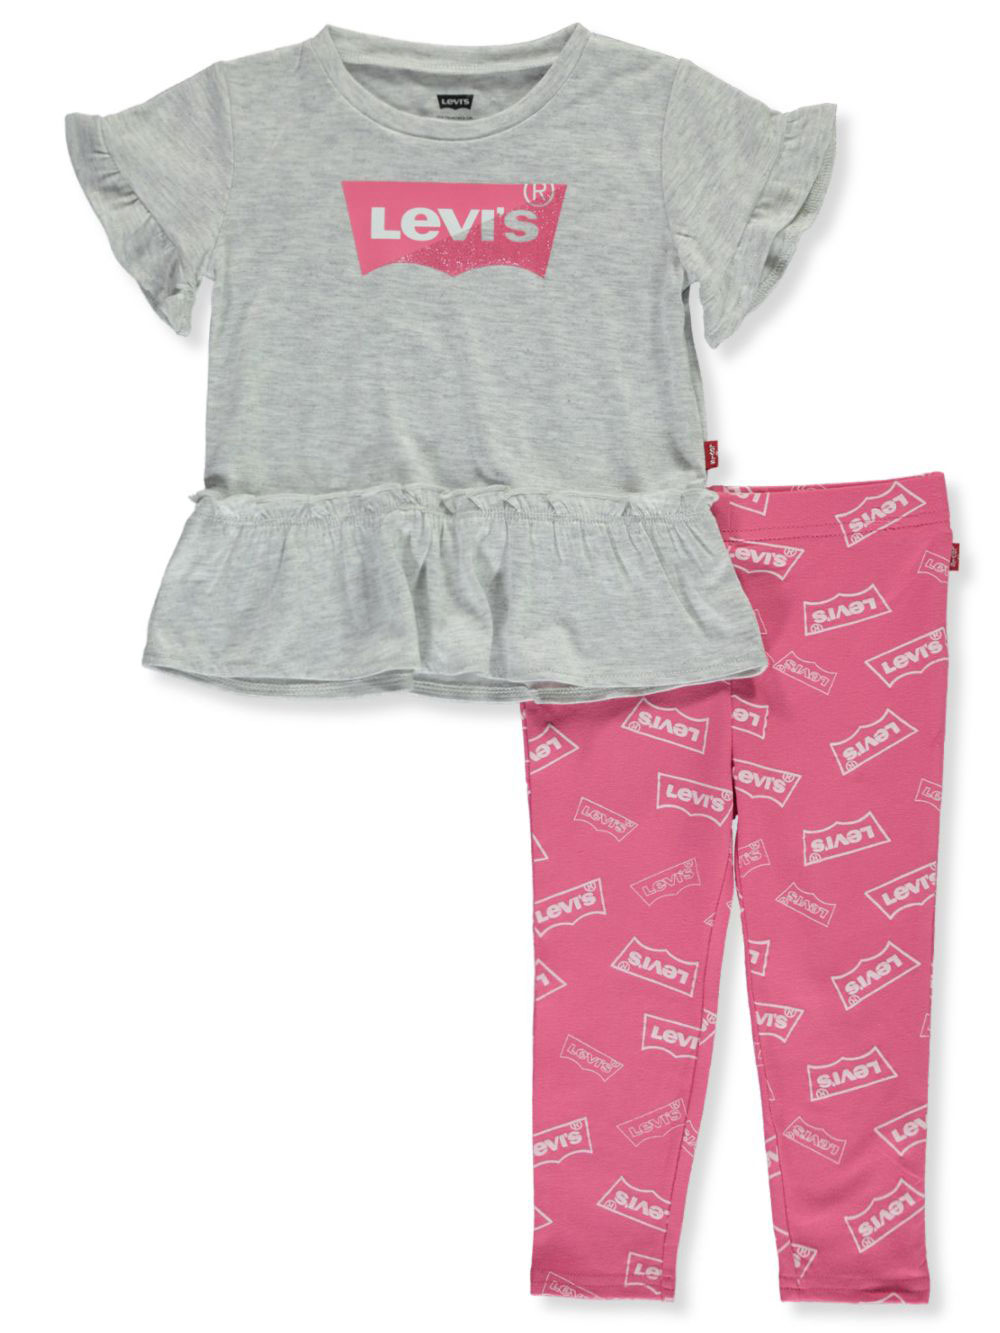 Girls Gray/pink Pant Sets